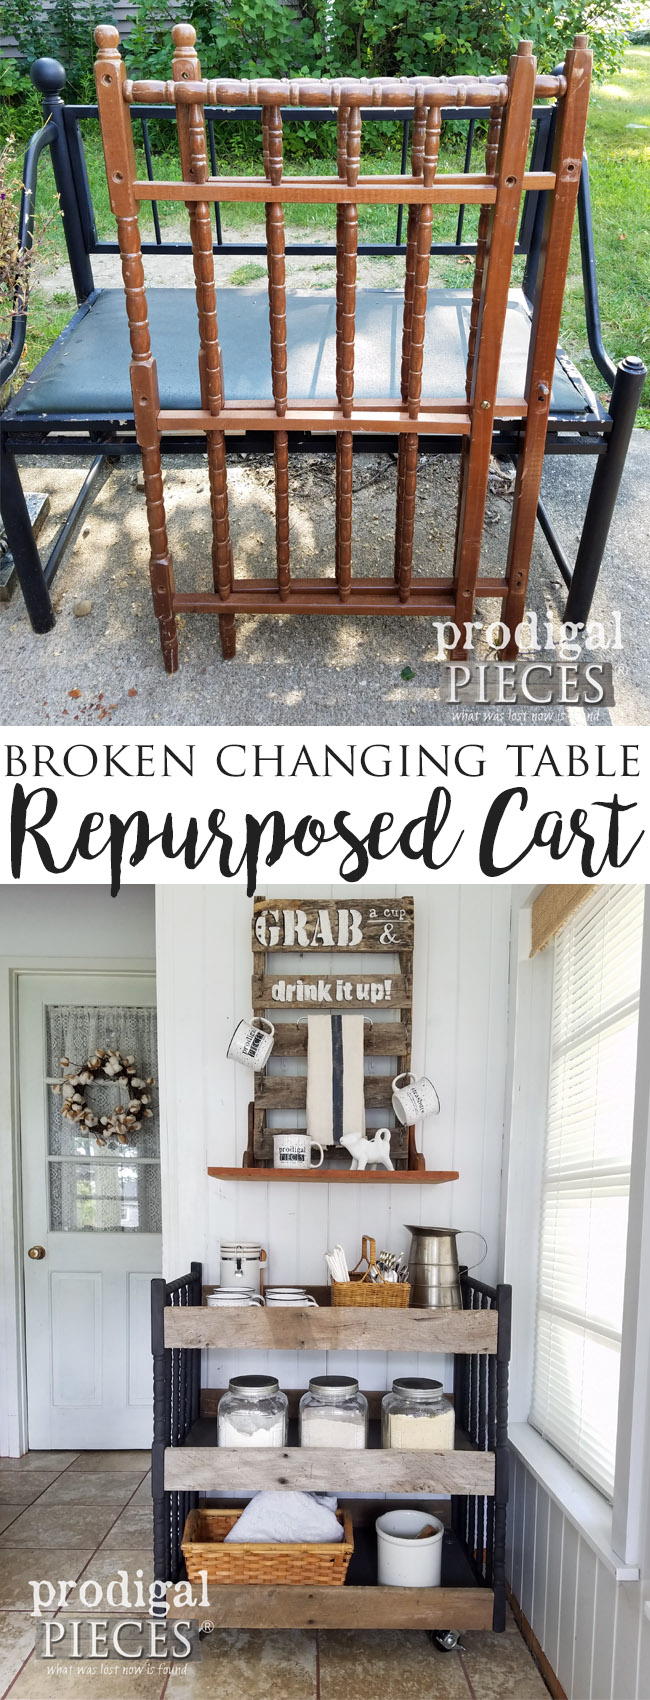 A farmhouse industrial style cart made from reclaimed barn wood and a repurposed baby changing table. See the transformation at Prodigal Pieces | prodigalpieces.com